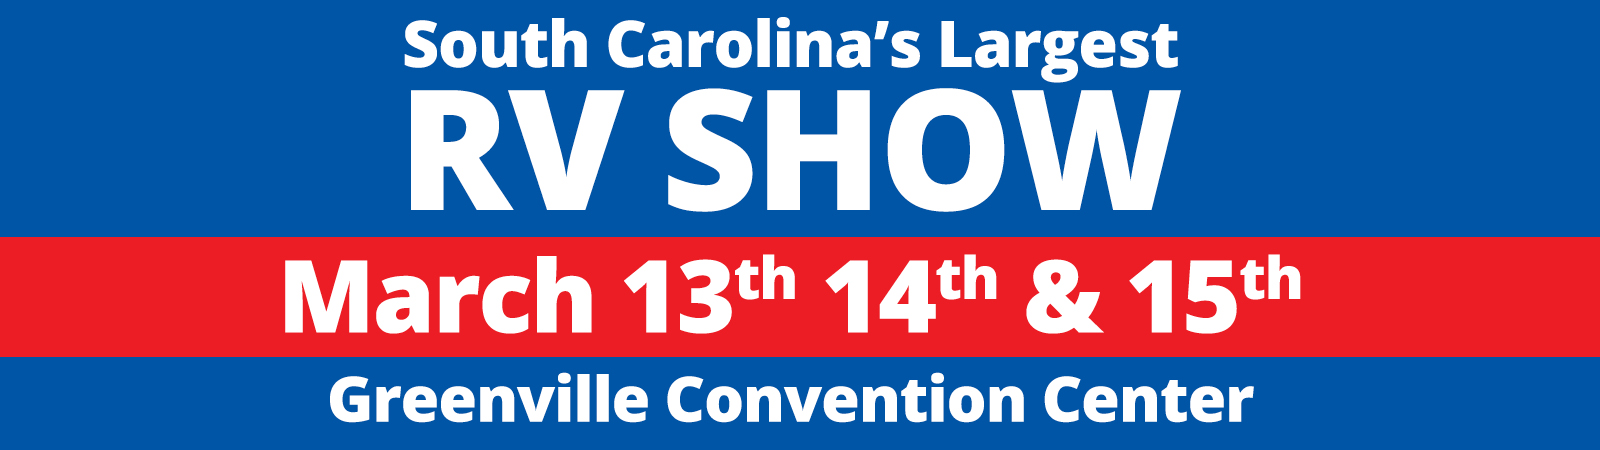 South Carolina's Largest RV Show